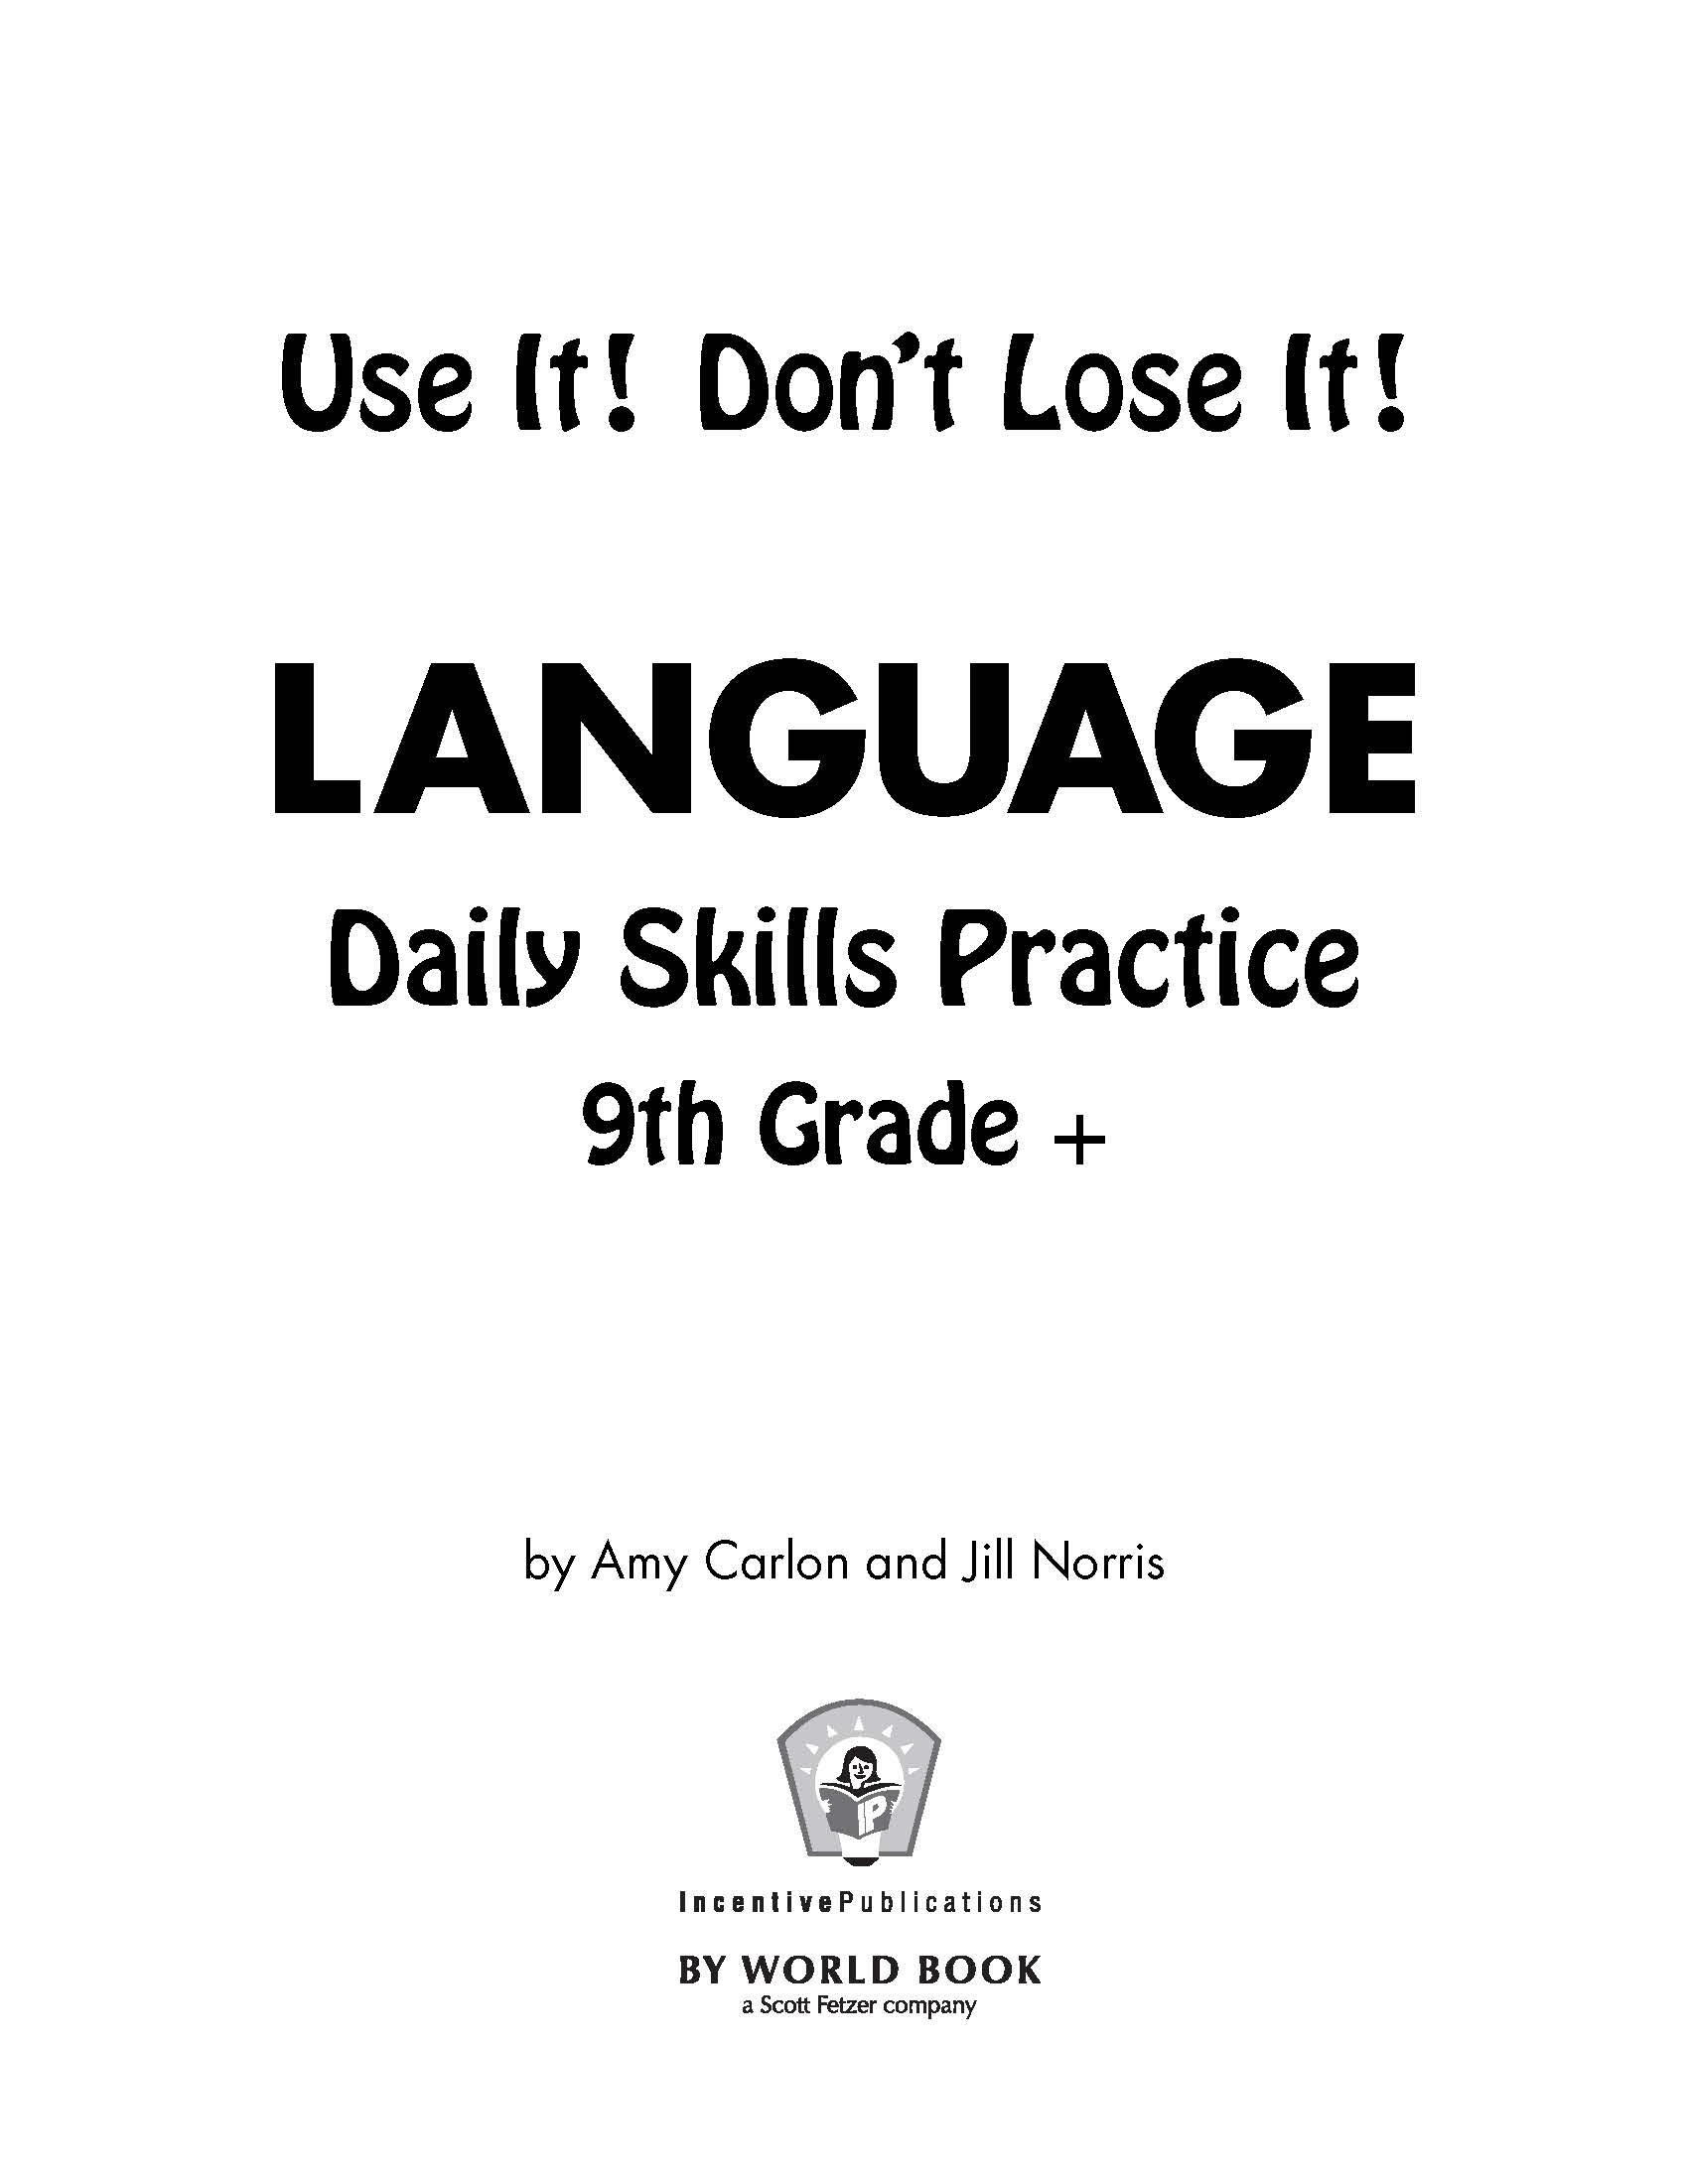 Daily Language Practice 9th Grade +: Use It! Don't Lose It